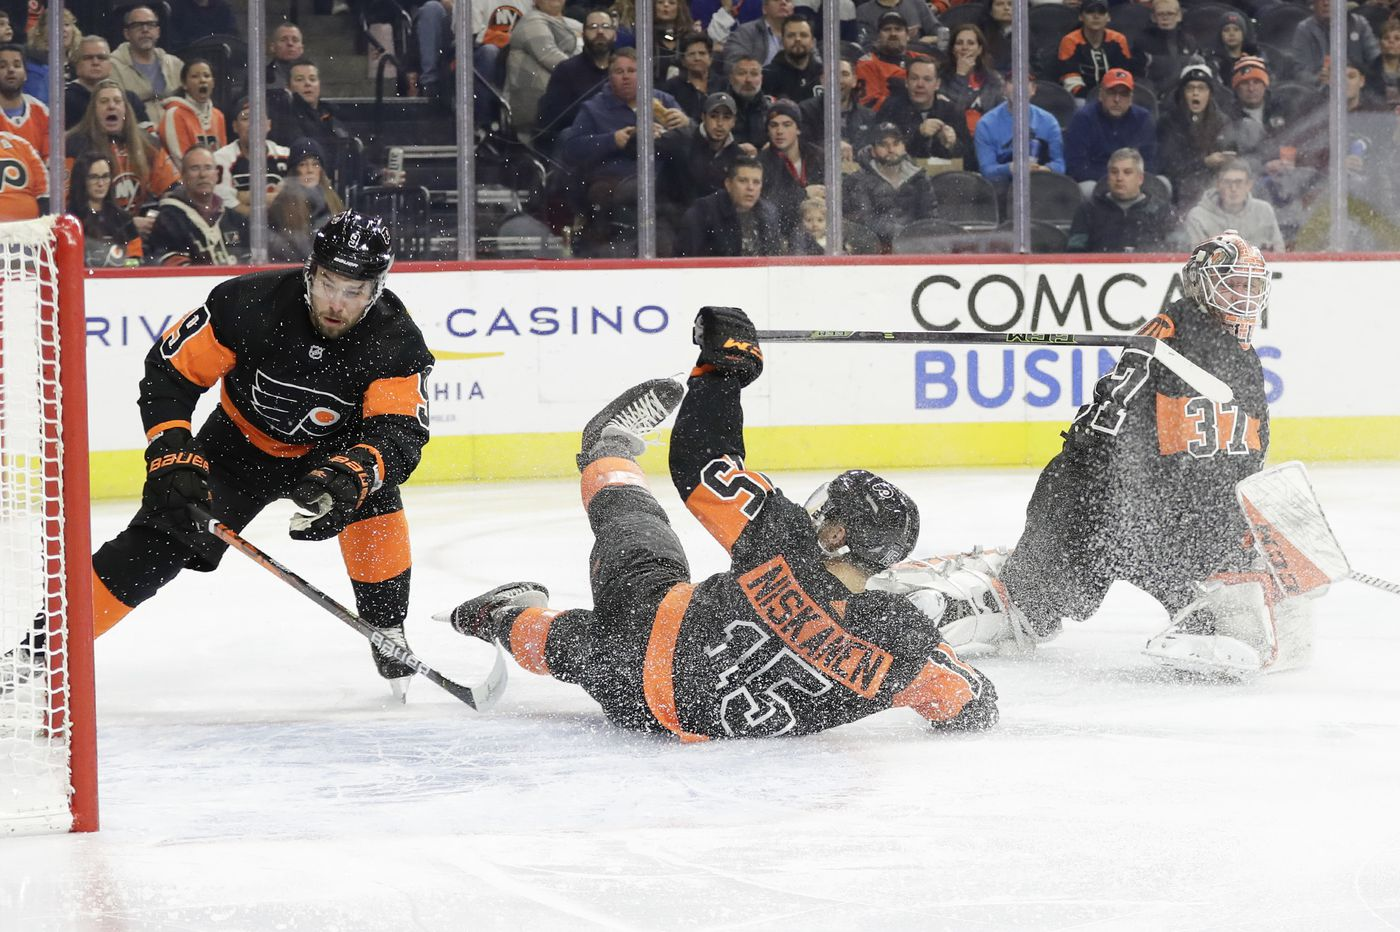 NHL, players smart in return-to-play decisions | On the Fly